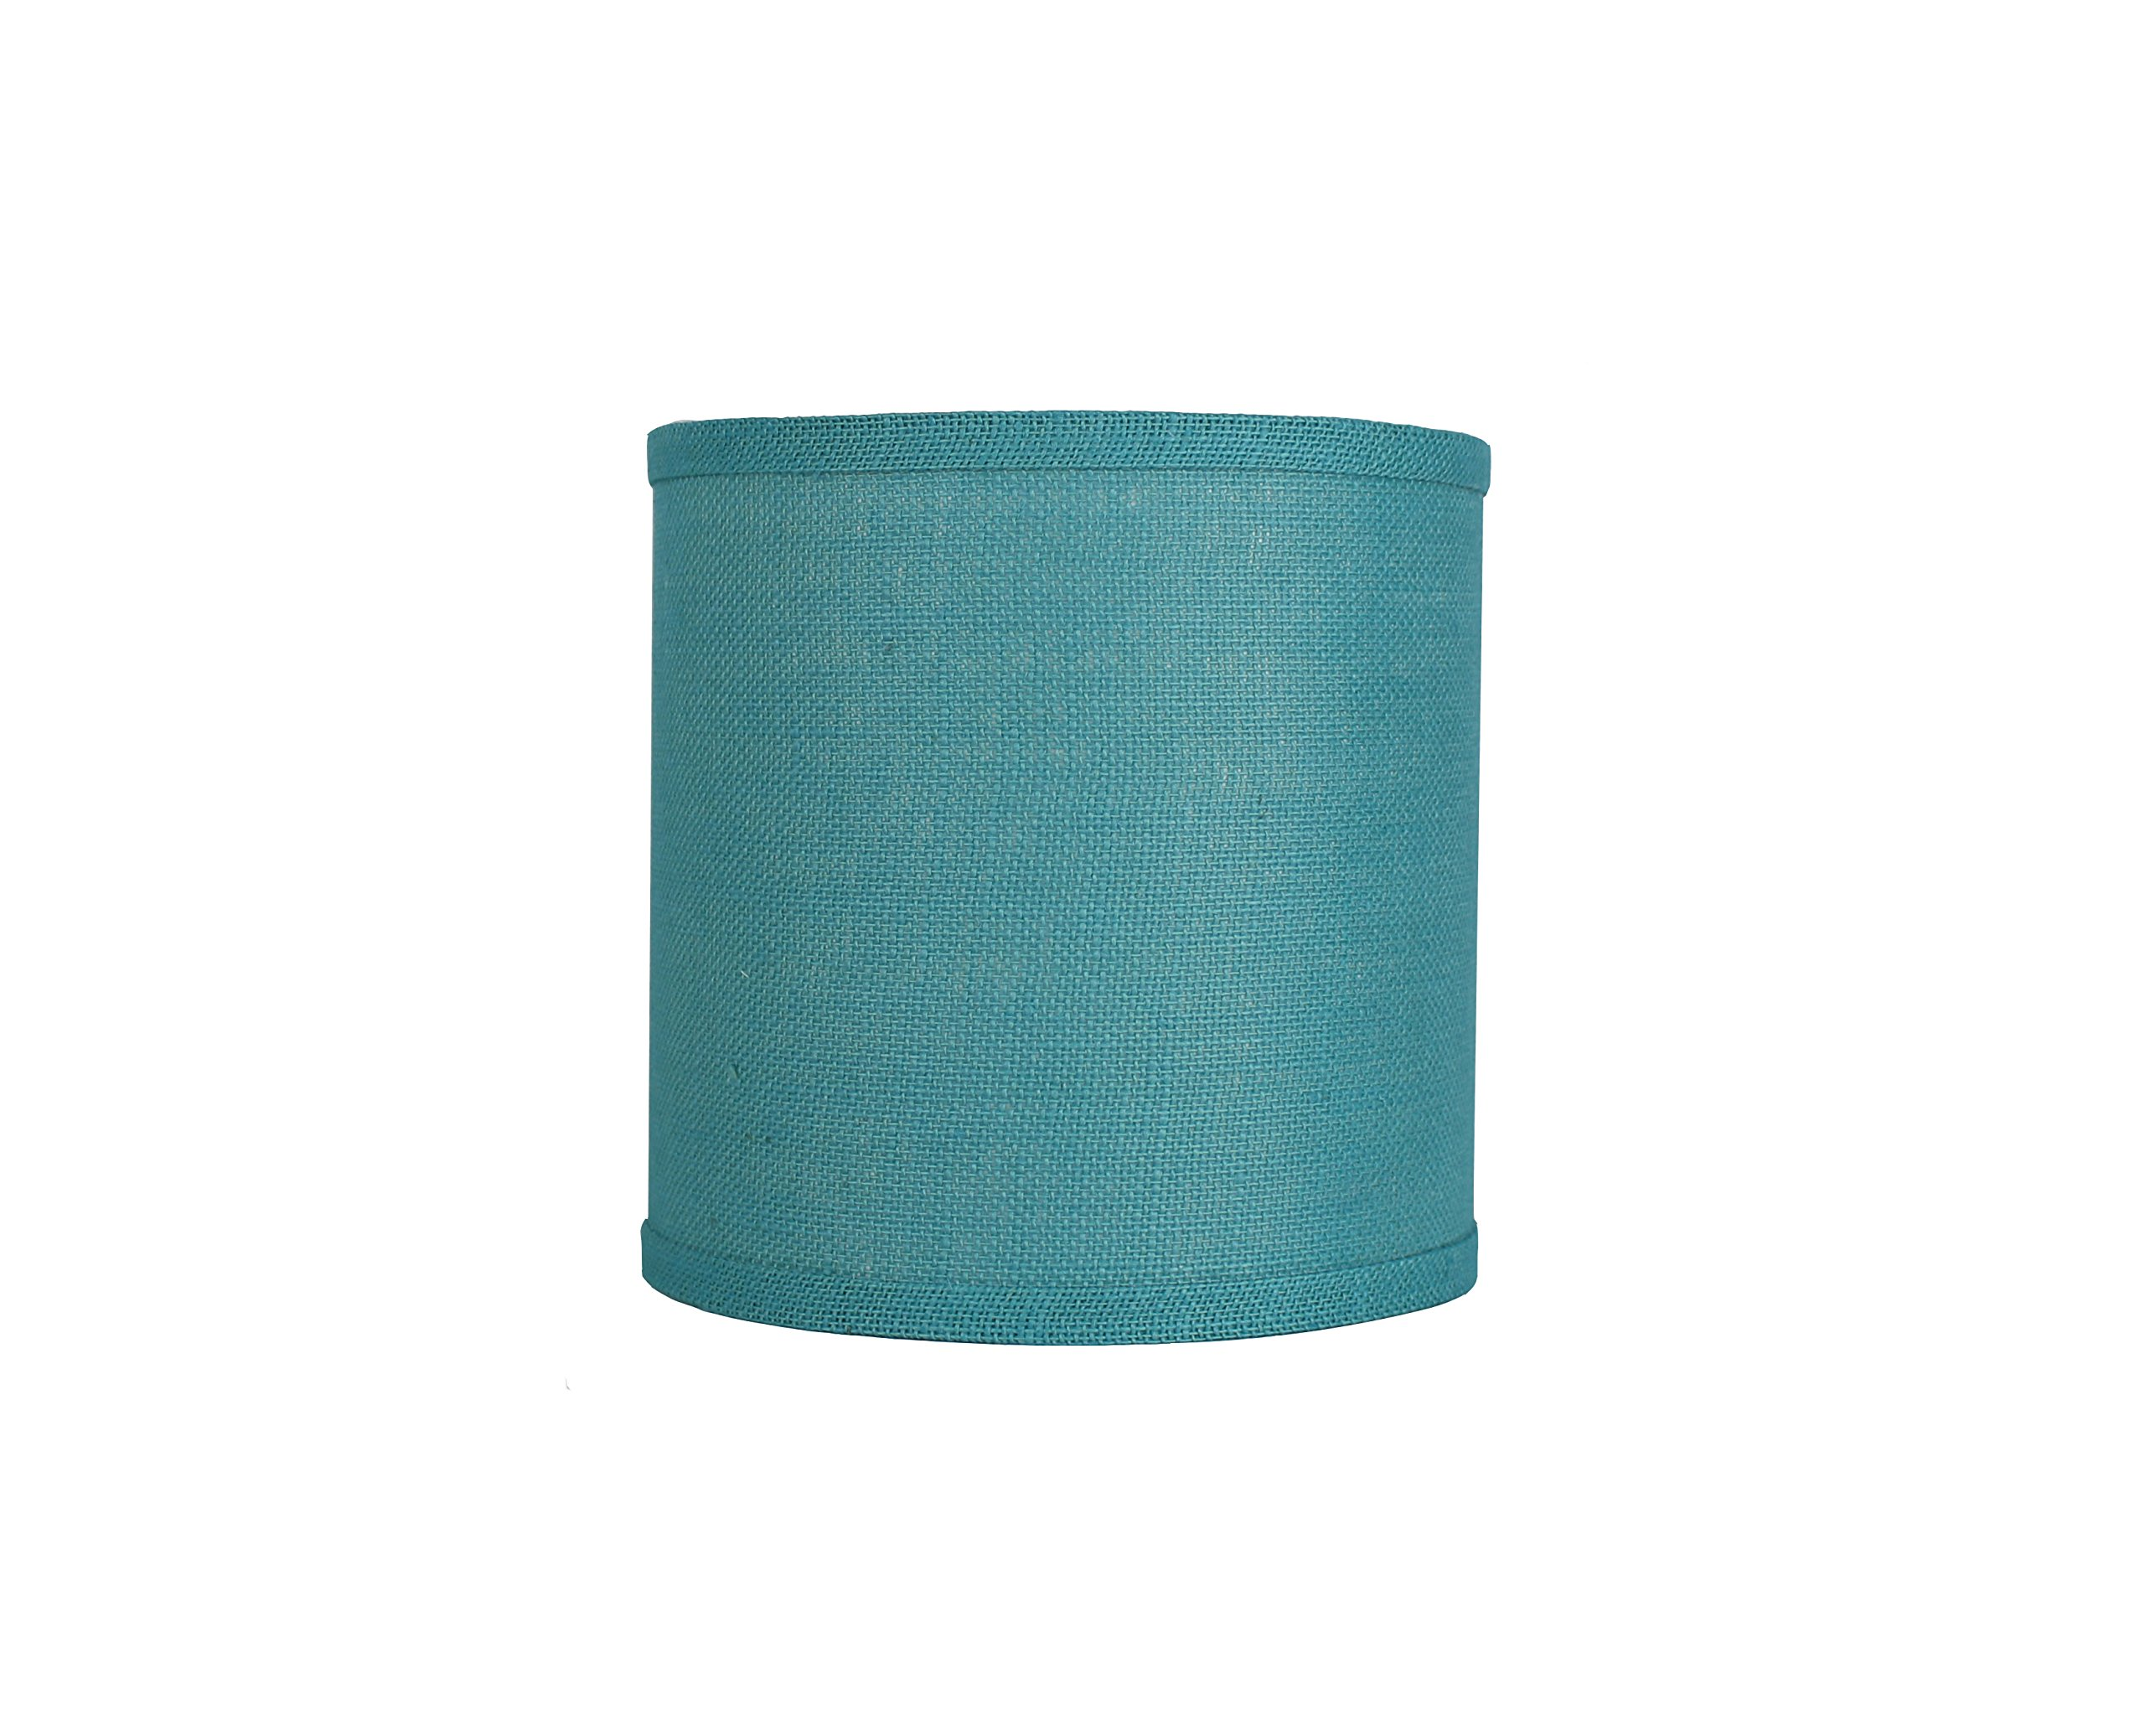 Urbanest Classic Drum Burlap Lampshade, 10-inch by 10-inch by 10-inch, Spa